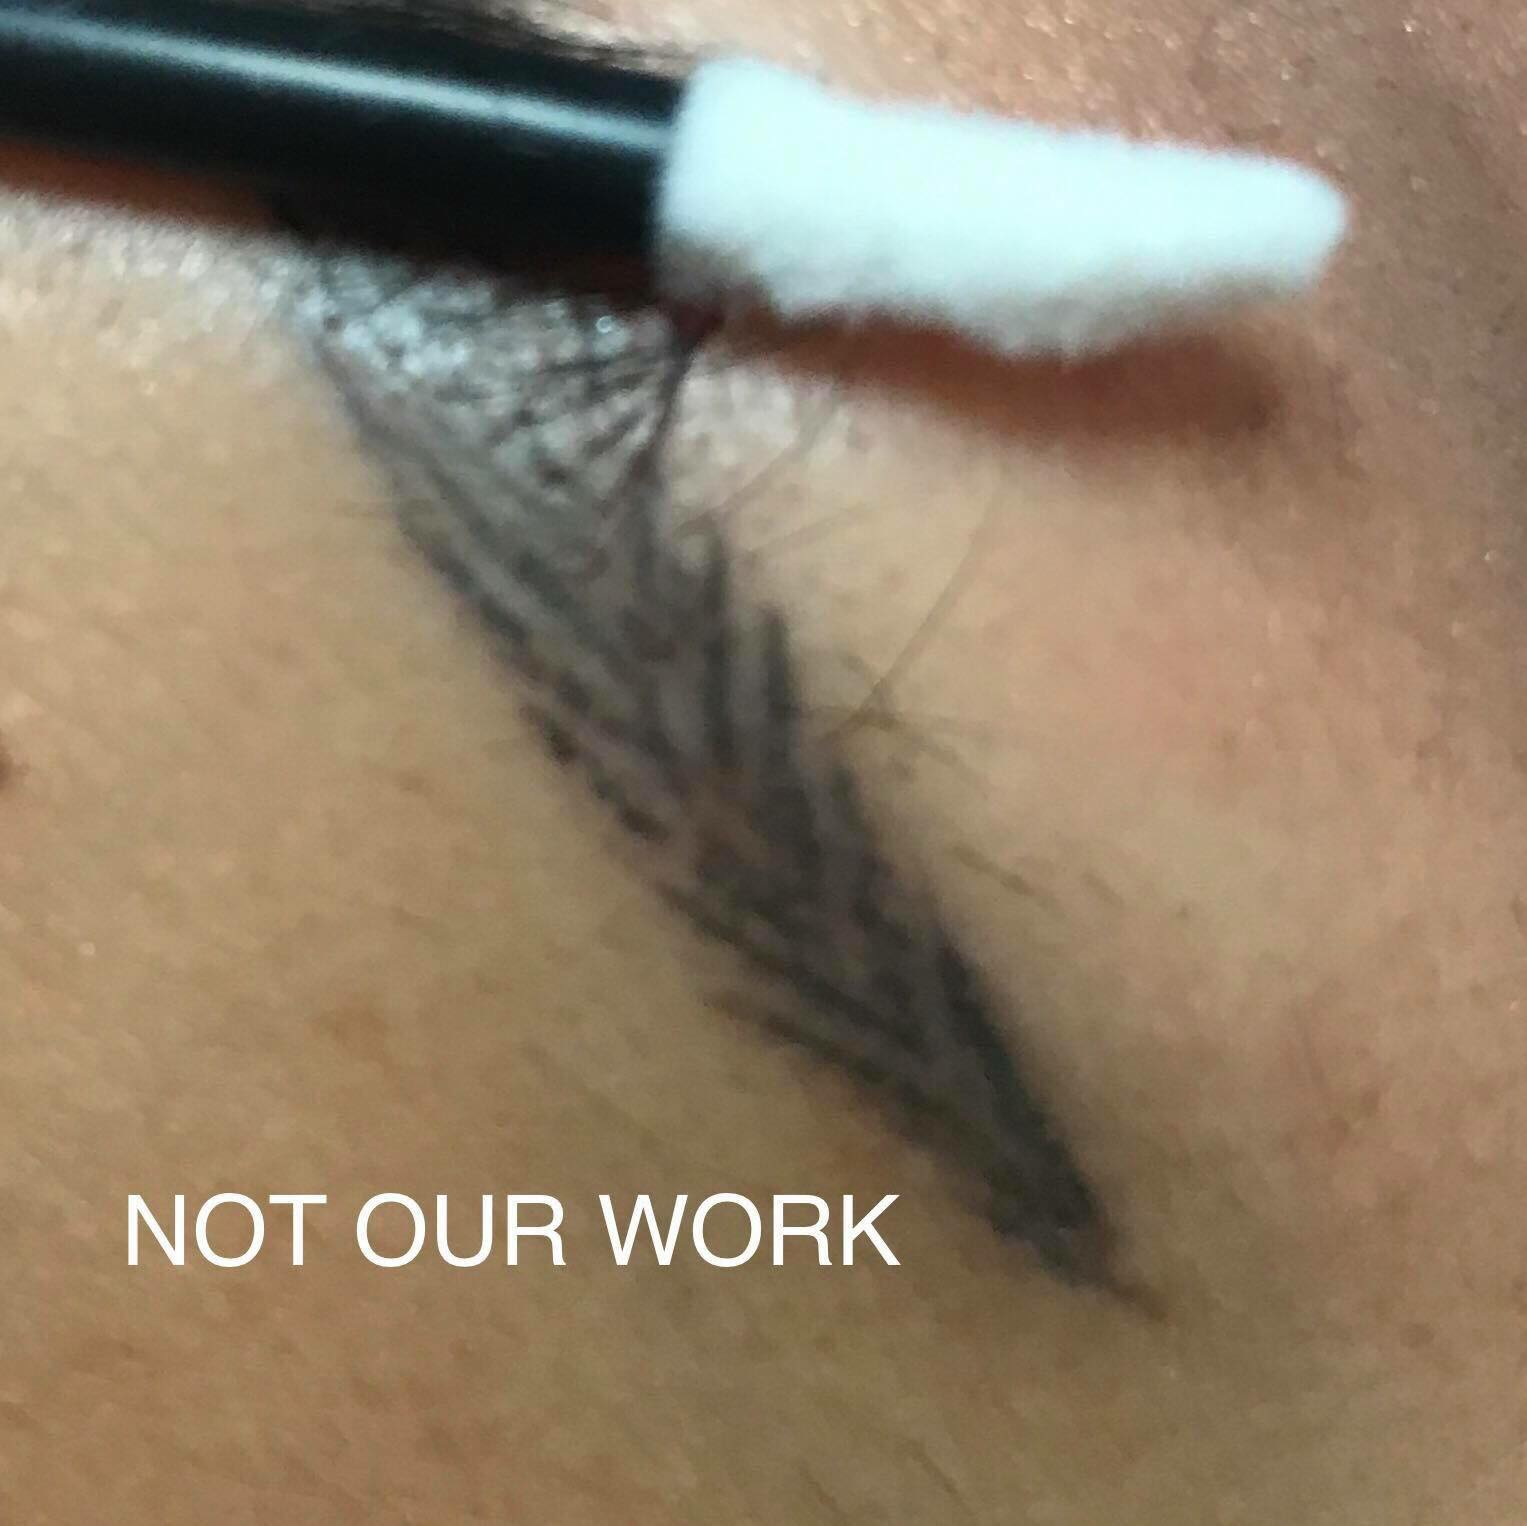 Eyebrow Tattoo Removal in Melbourne - Eyebrow Tattoo Correction